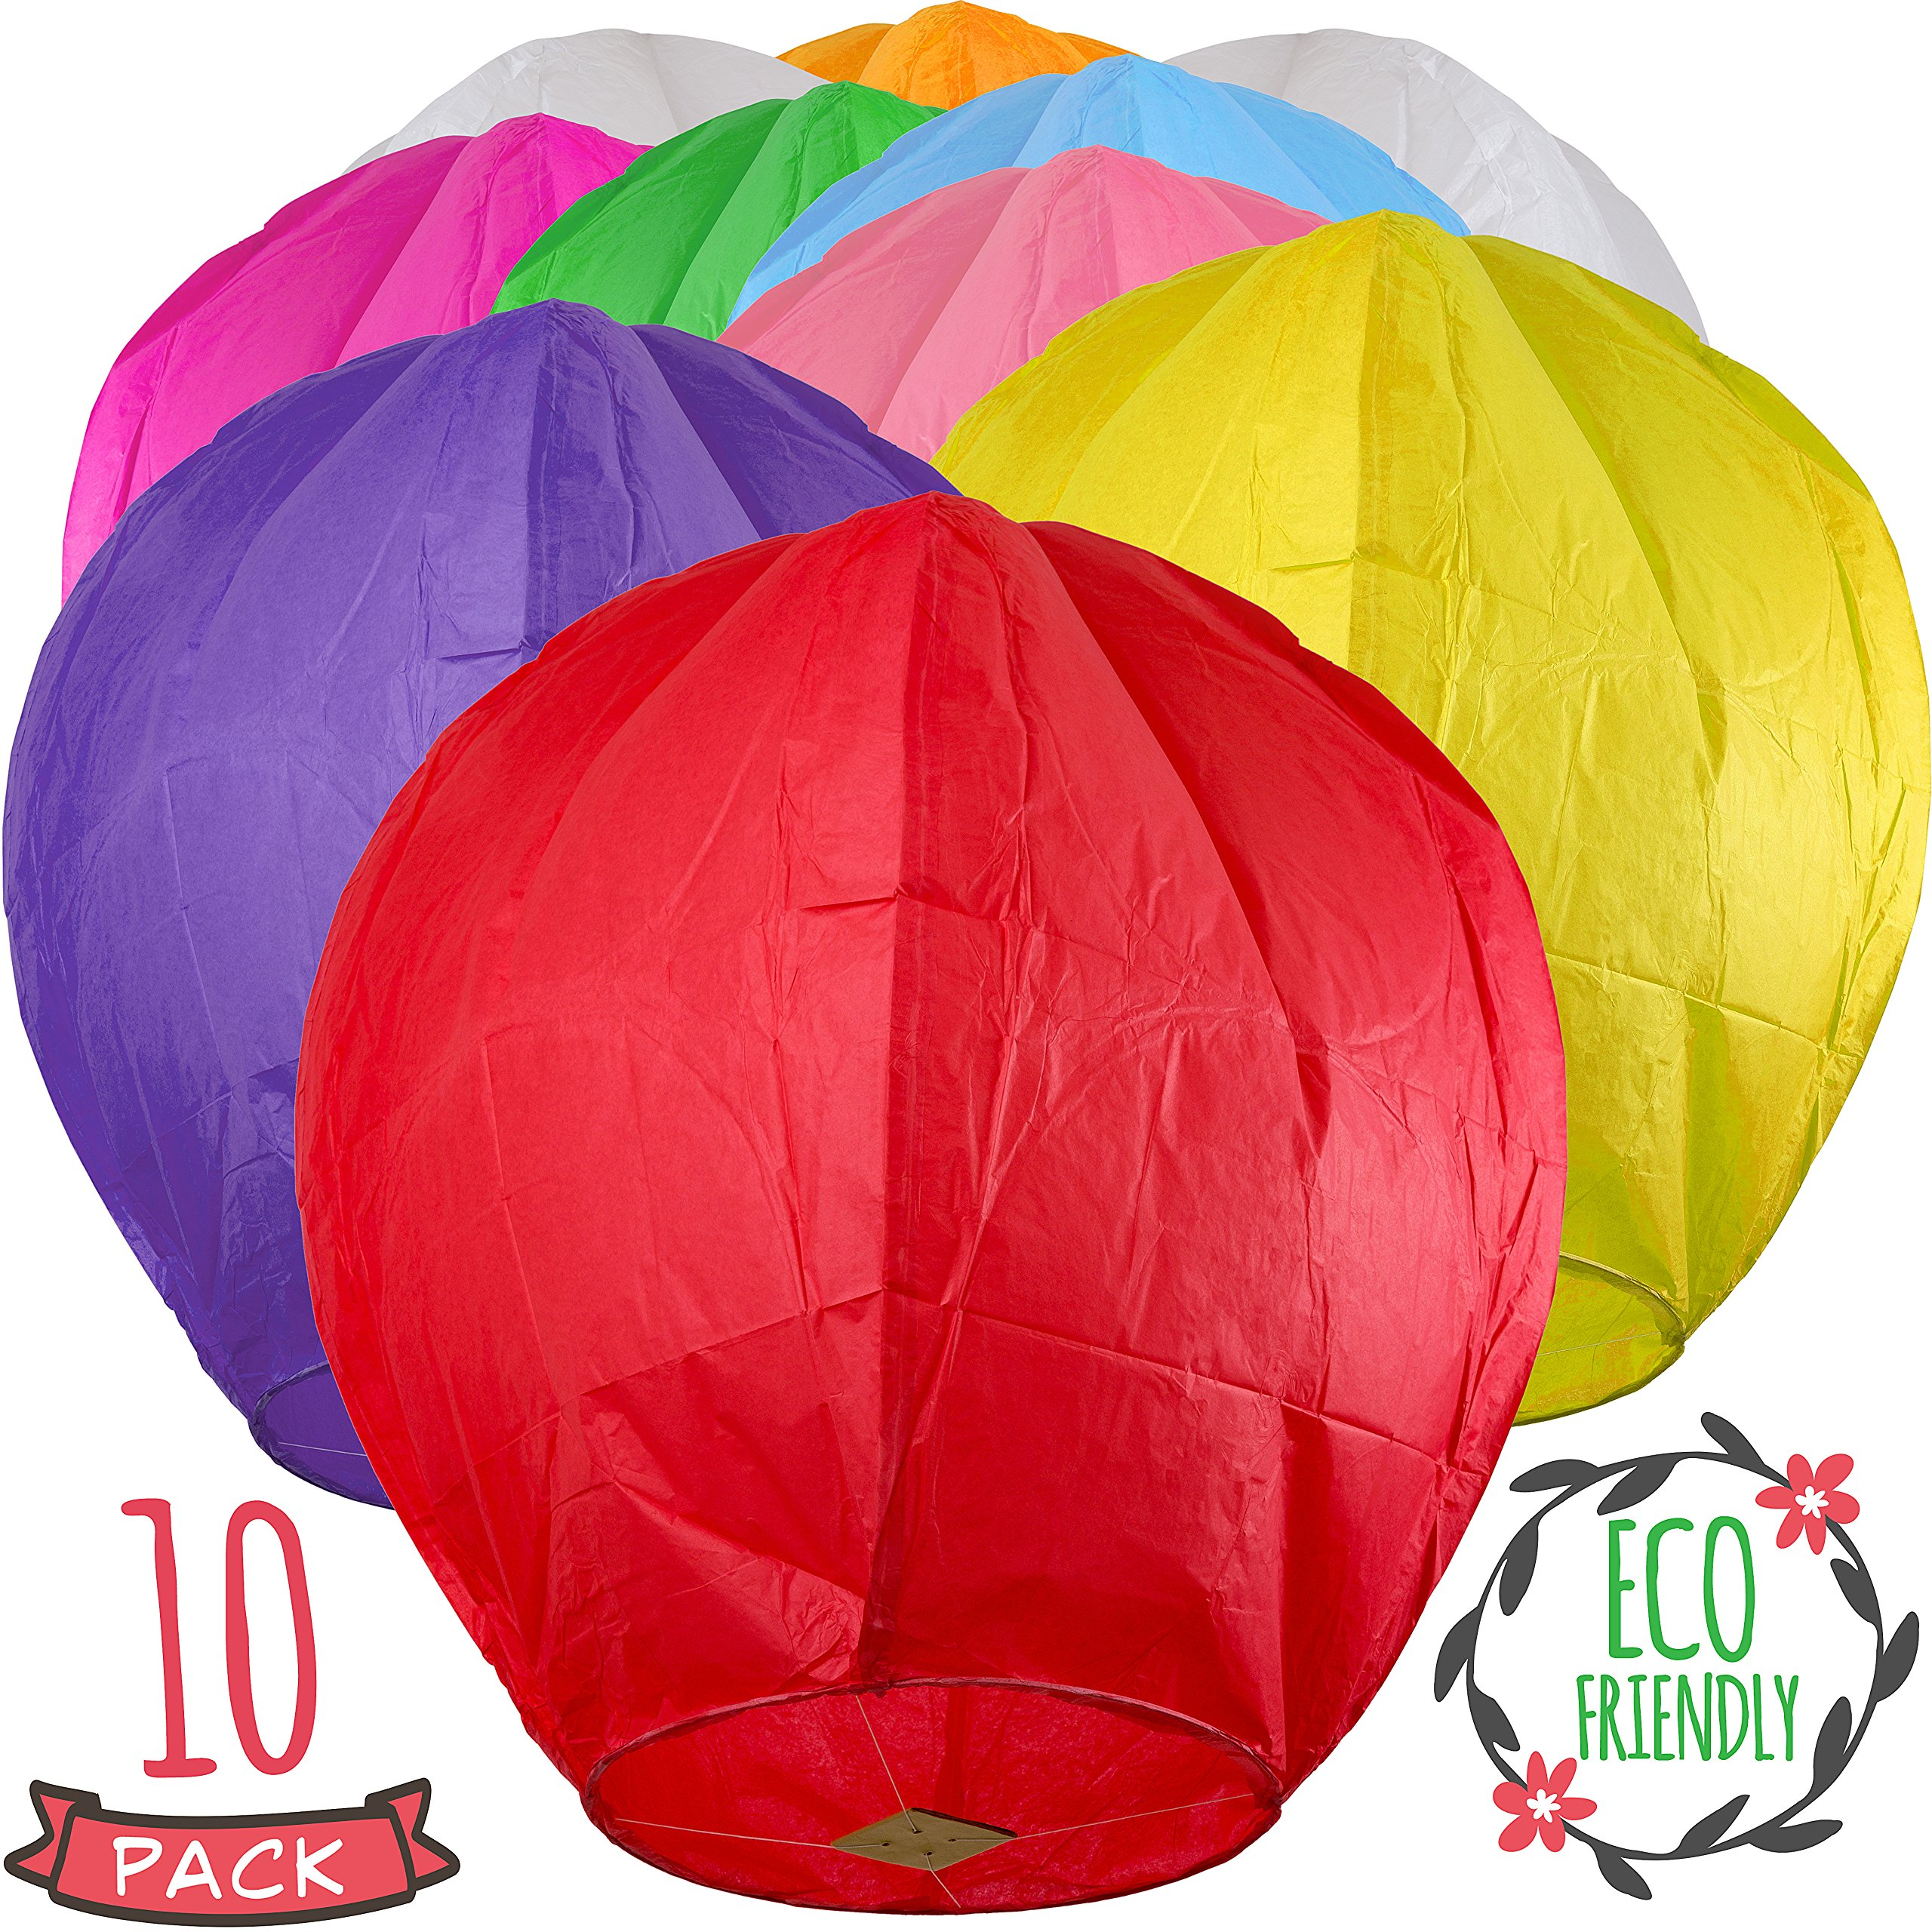 SKY HIGH Colorful Chinese Lanterns - Biodegradable Paper Lanterns Multicolor Assortment for Birthdays, Parties, New Years, Memorial Ceremonies, and More – 10 Pack by SKY HIGH